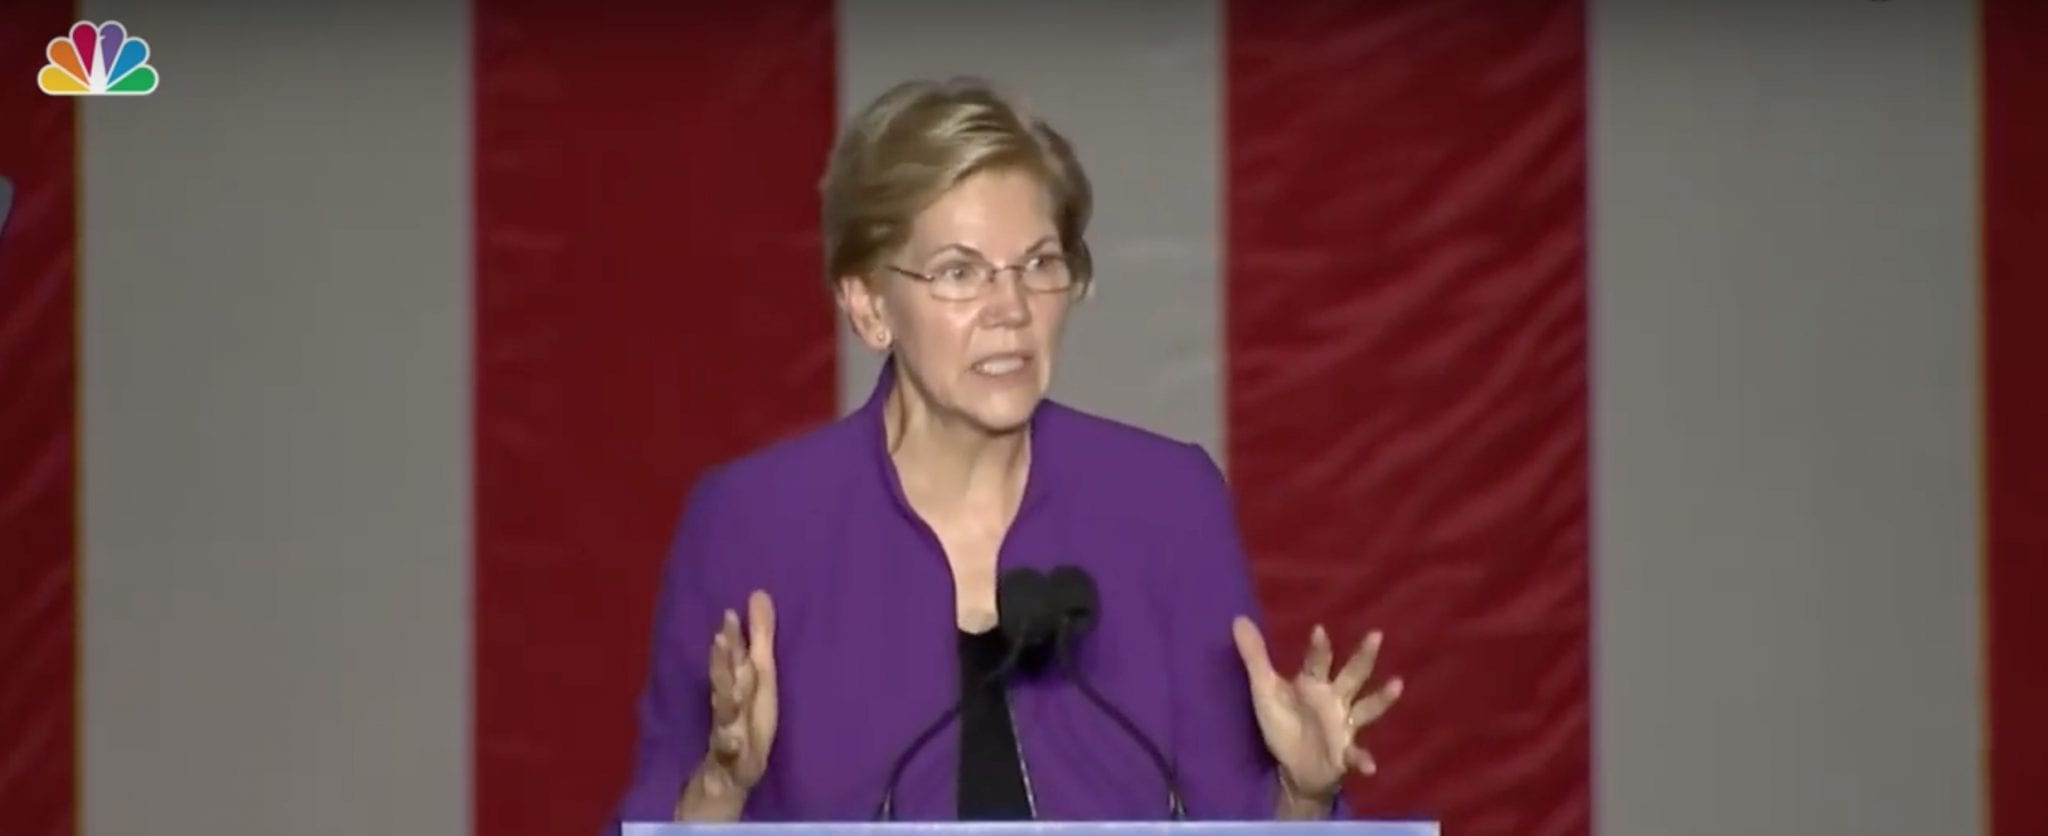 Warren Will Win on Corruption | The American Spectator | Politics Is Too Important To Be Taken Seriously.